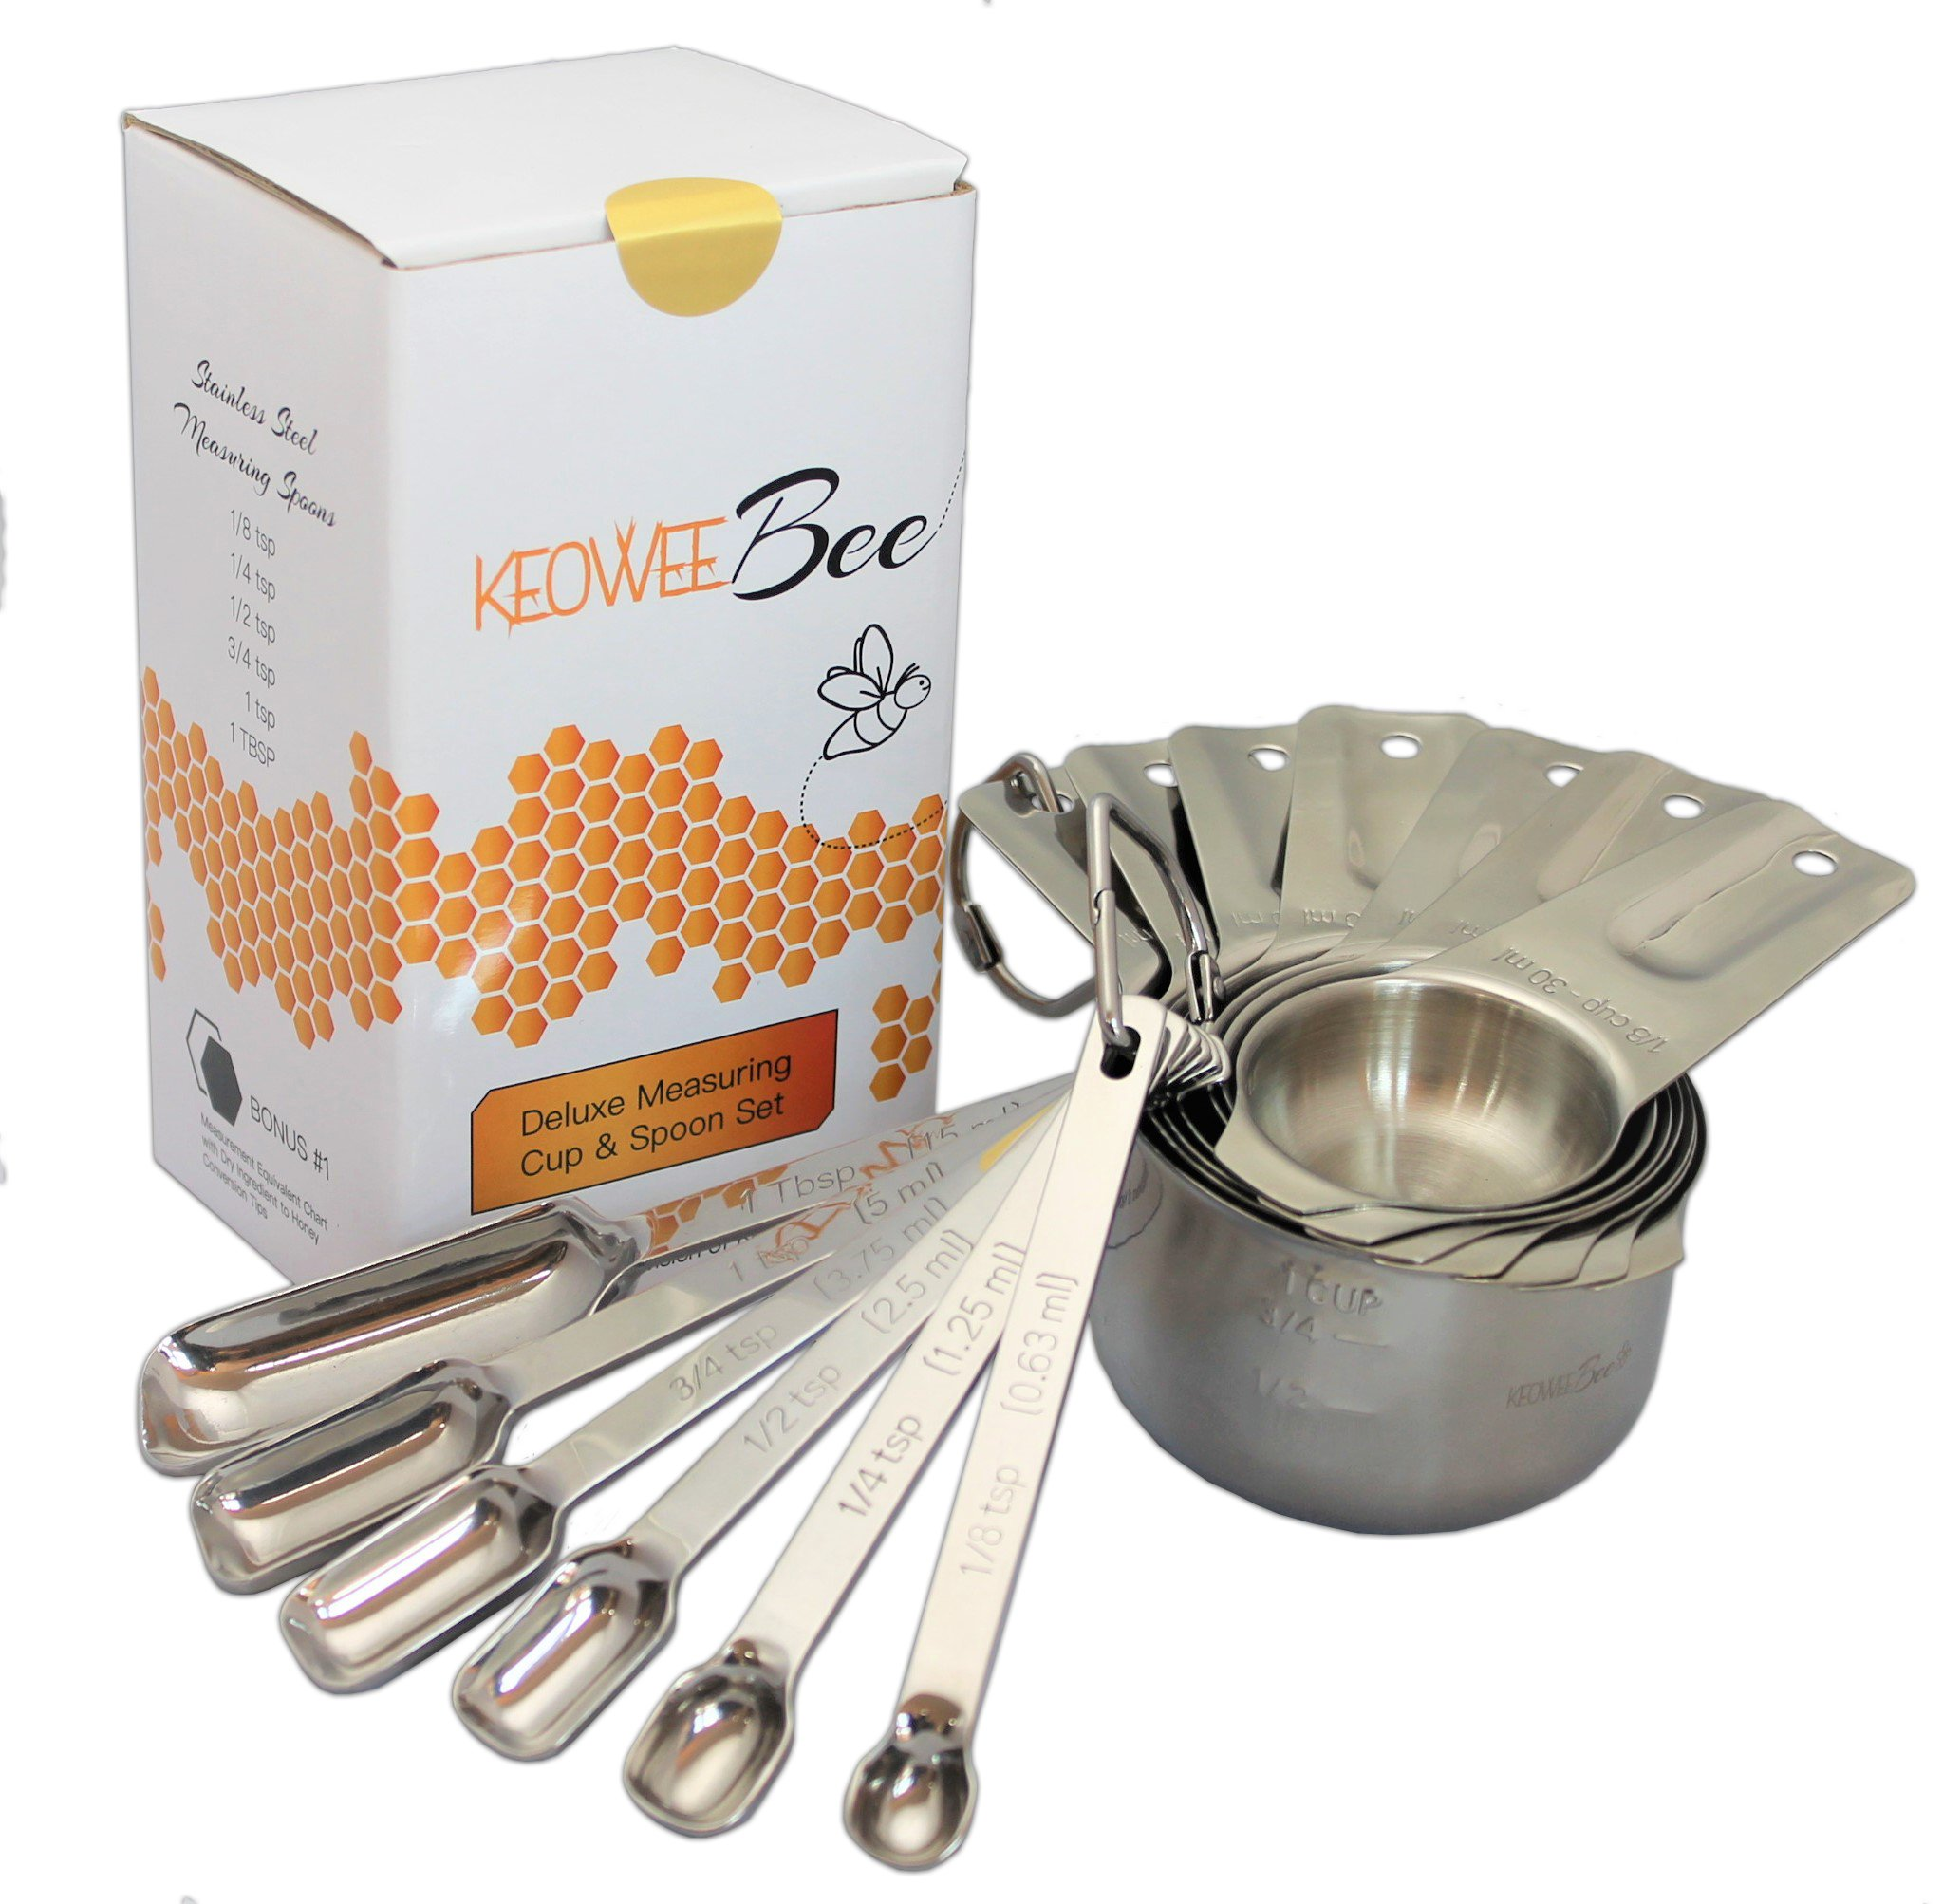 Stainless Steel Measuring Cups and Measuring Spoons - Set of 13 with 2 Bonus Items - By Keowee Bee